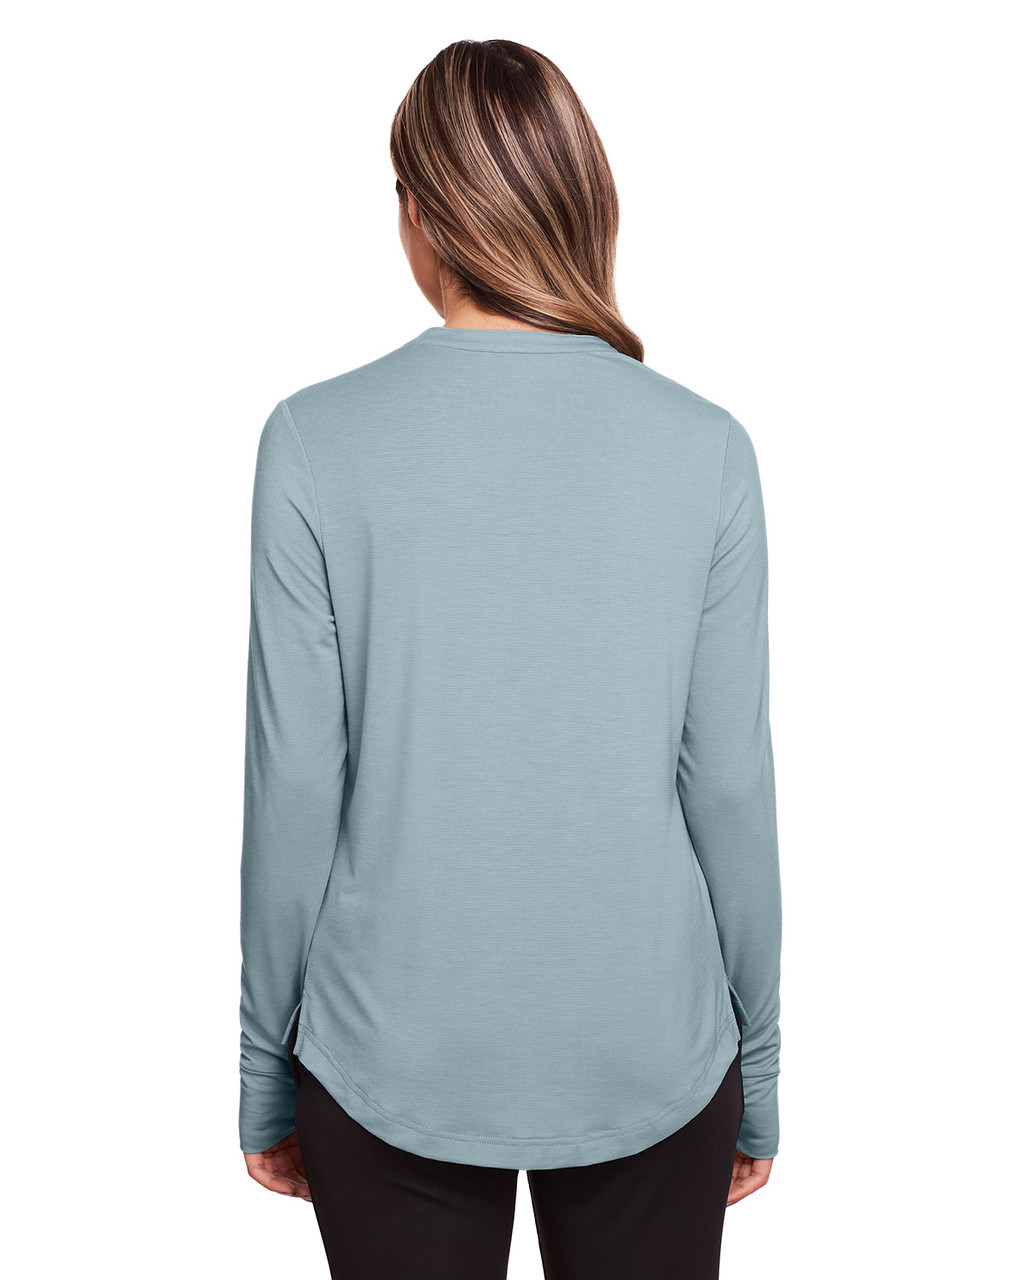 Opal Blue - Back, NE400W North End Ladies' Jaq Snap-Up Stretch Performance Pullover Long Sleeve Shirt | BlankClothing.ca